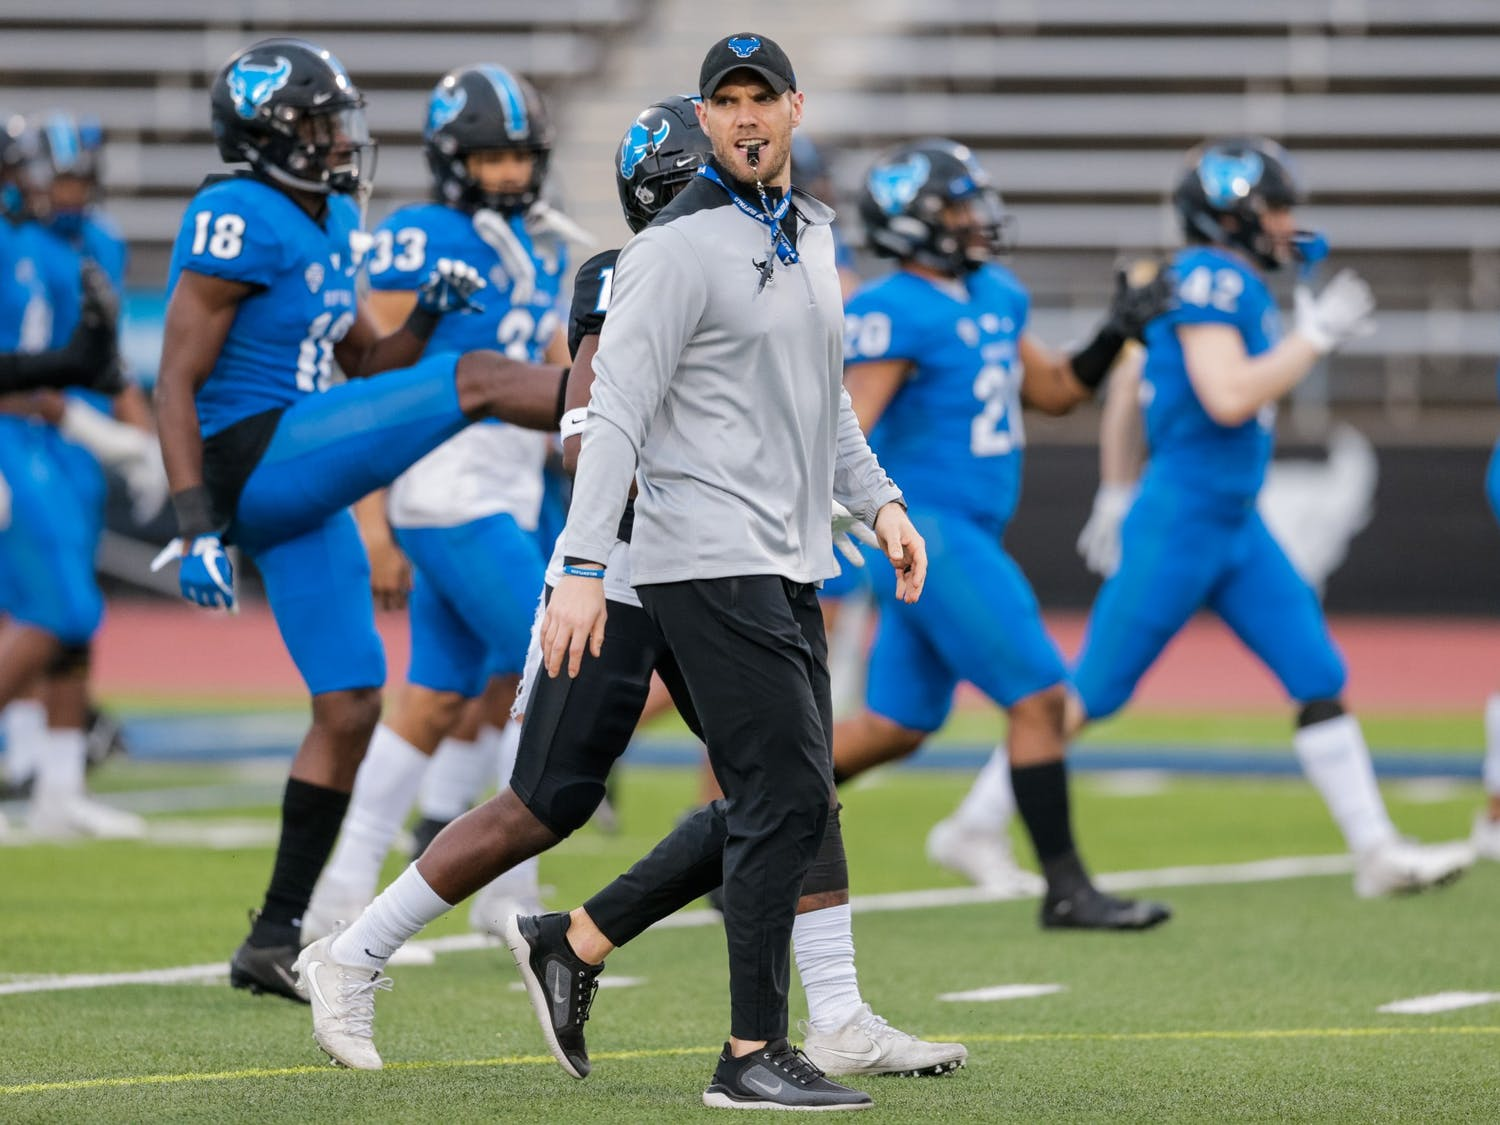 UB strength and conditioning coach Matt Gildersleeve has been at the forefront of the fight to raise money for service workers impacted by COVID-19.